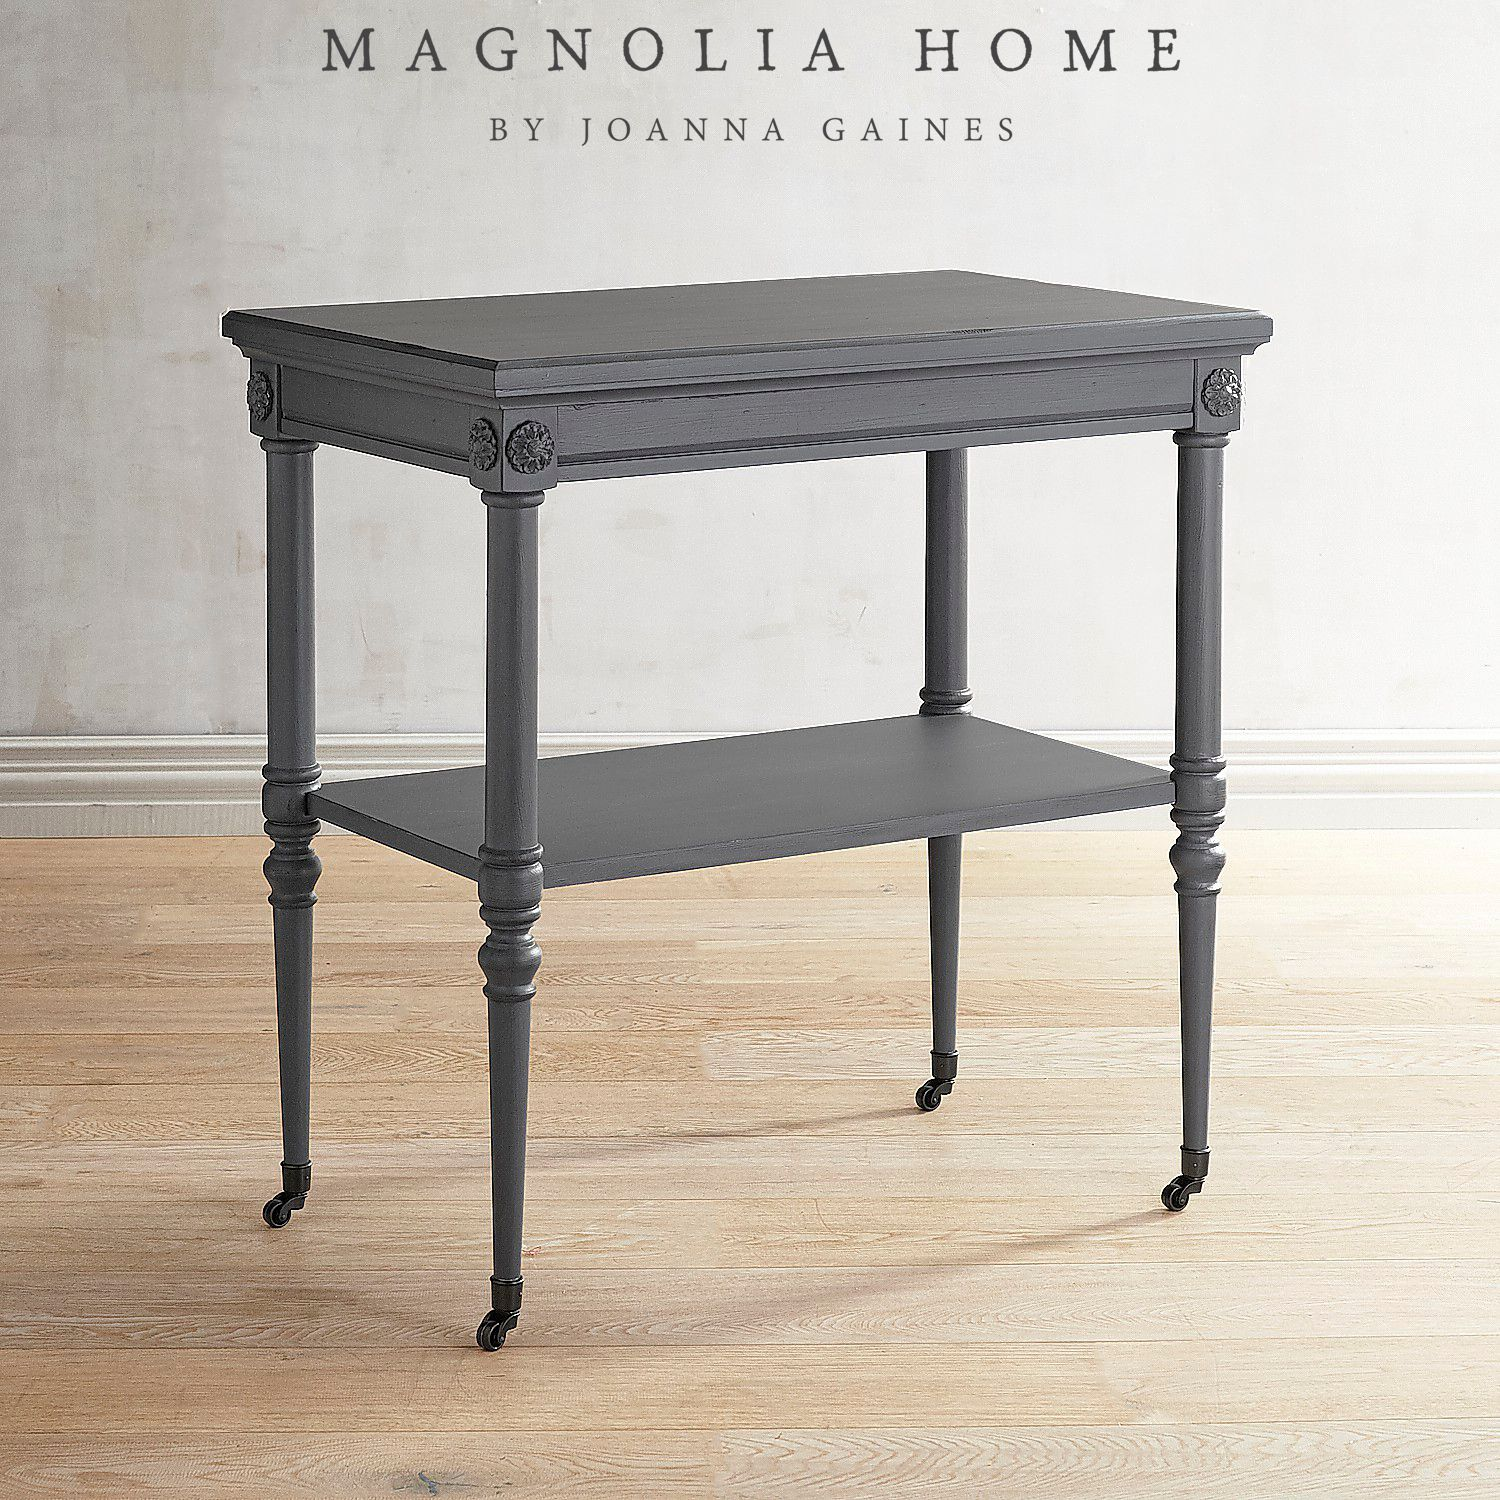 magnolia home petite rosette gray accent table pier imports foyer cabinet furniture seater dining cover blue and white oriental lamps retro sofa set decor cabinets best modern